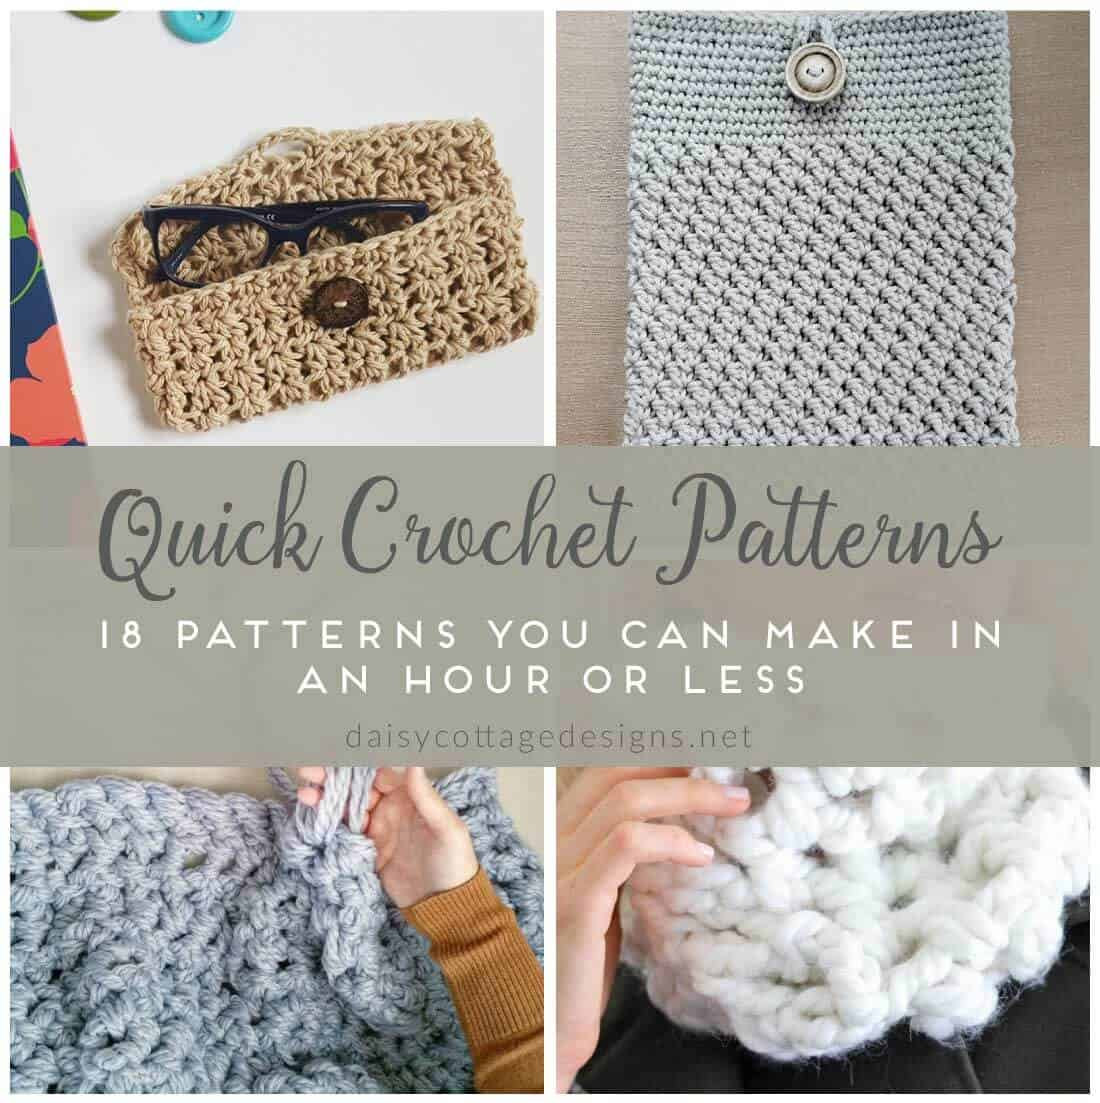 Free Crochet Pattern Quick : Easy Crochet Patterns - Free Crochet Patterns on Daisy ...